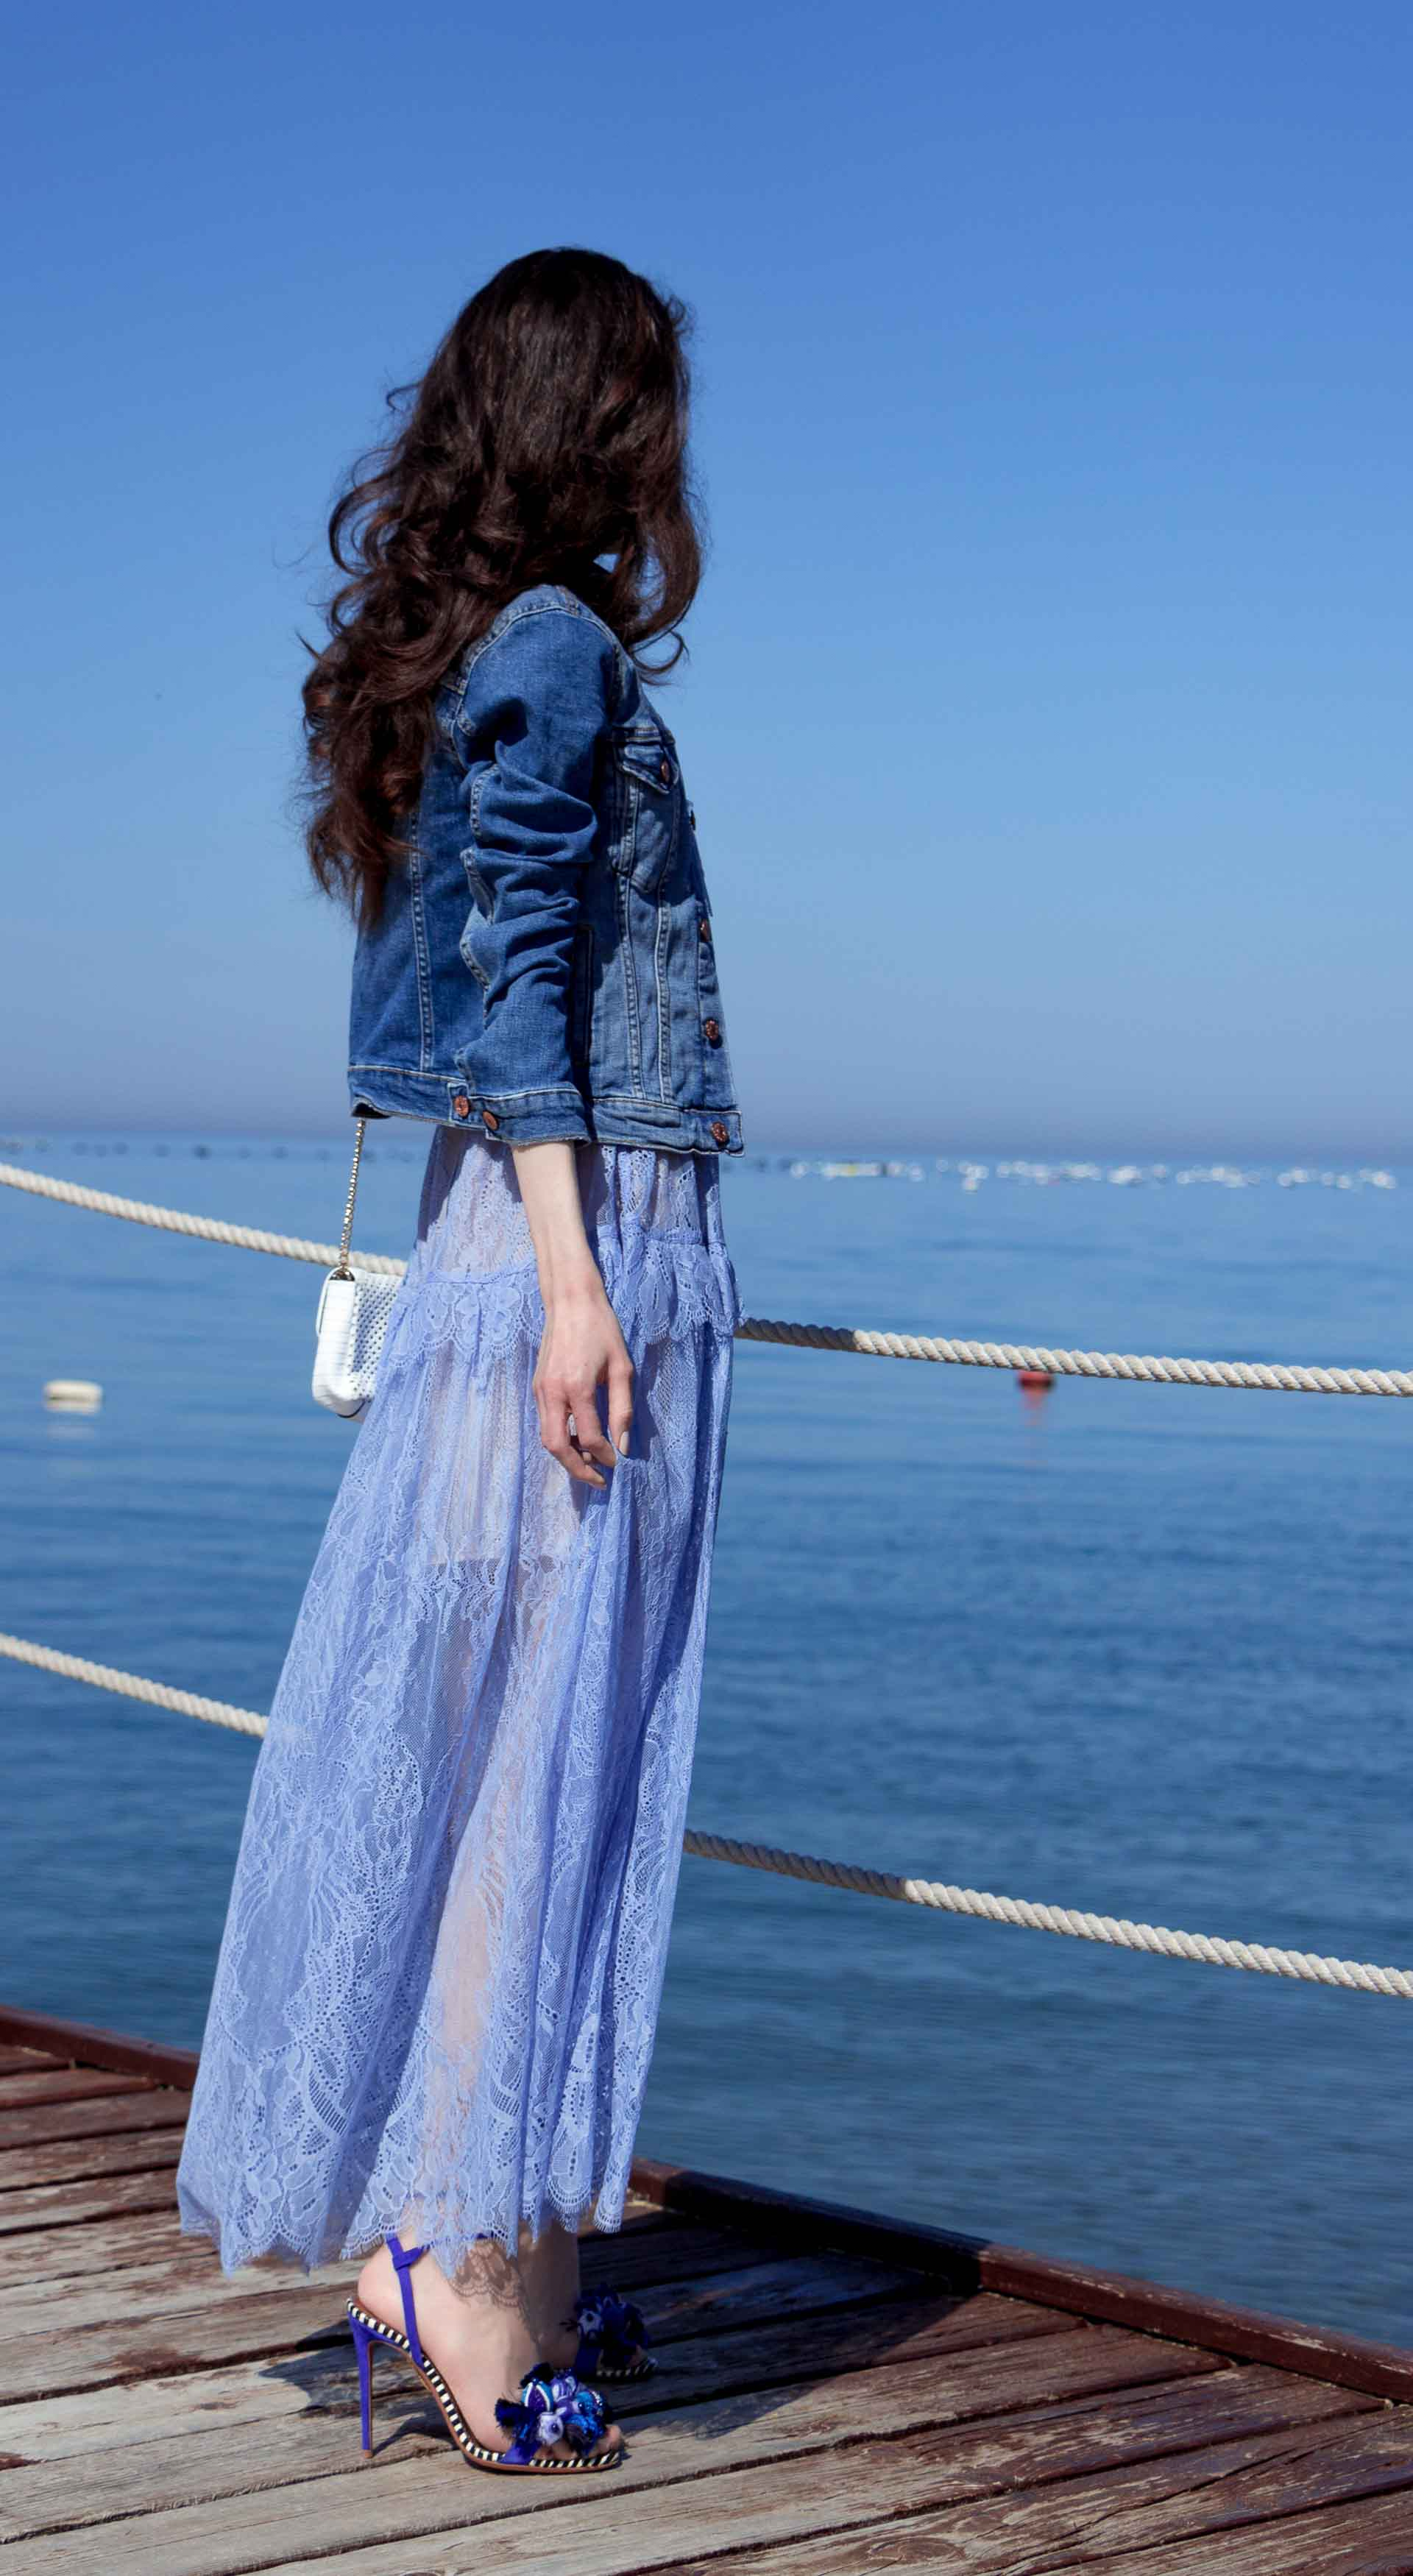 Veronika Lipar Fashion Blogger of Brunette from Wall Street wearing blue off the shoulder midi lace dress from Self-Portrait, H&M blue denim jacket, white chain shoulder bag, Aquazzura blue pom pom tassels sandals, white Lolita cat-eye sunglasses for romantic summer date at the seaside